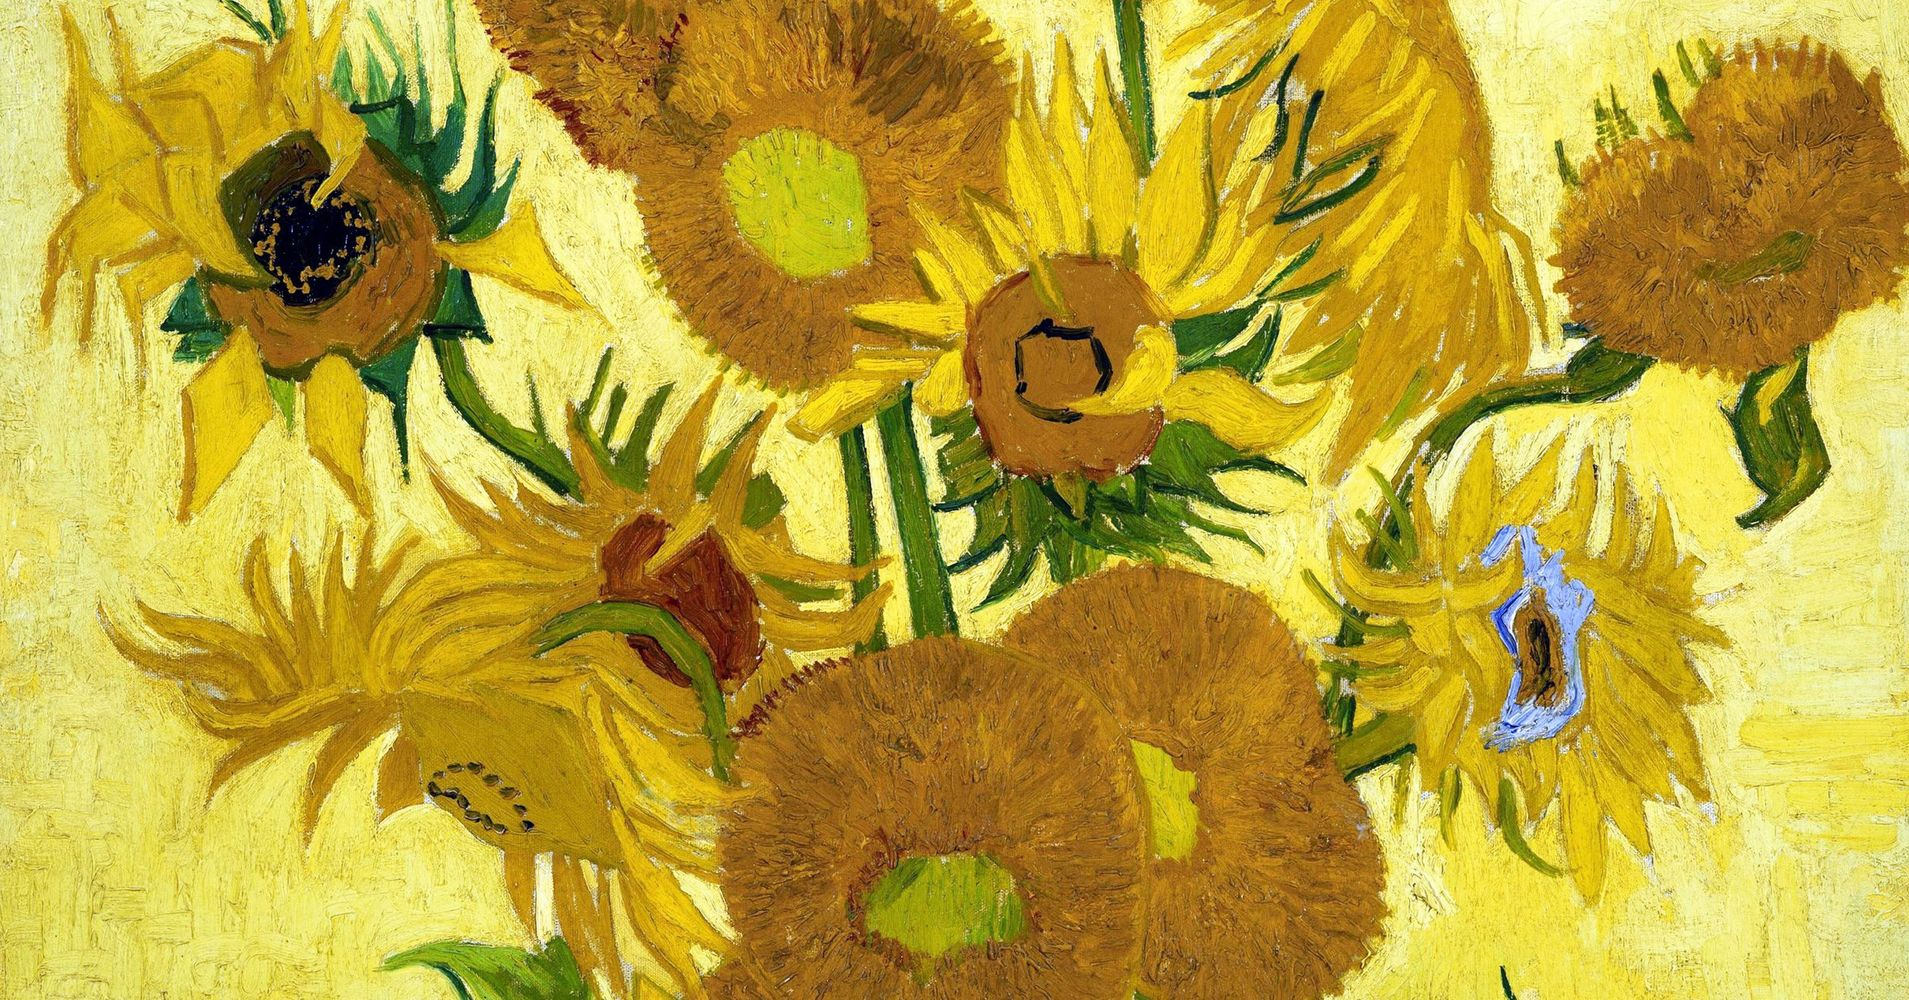 Van Gogh Museum Plans To Restore Iconic Sunflowers Painting